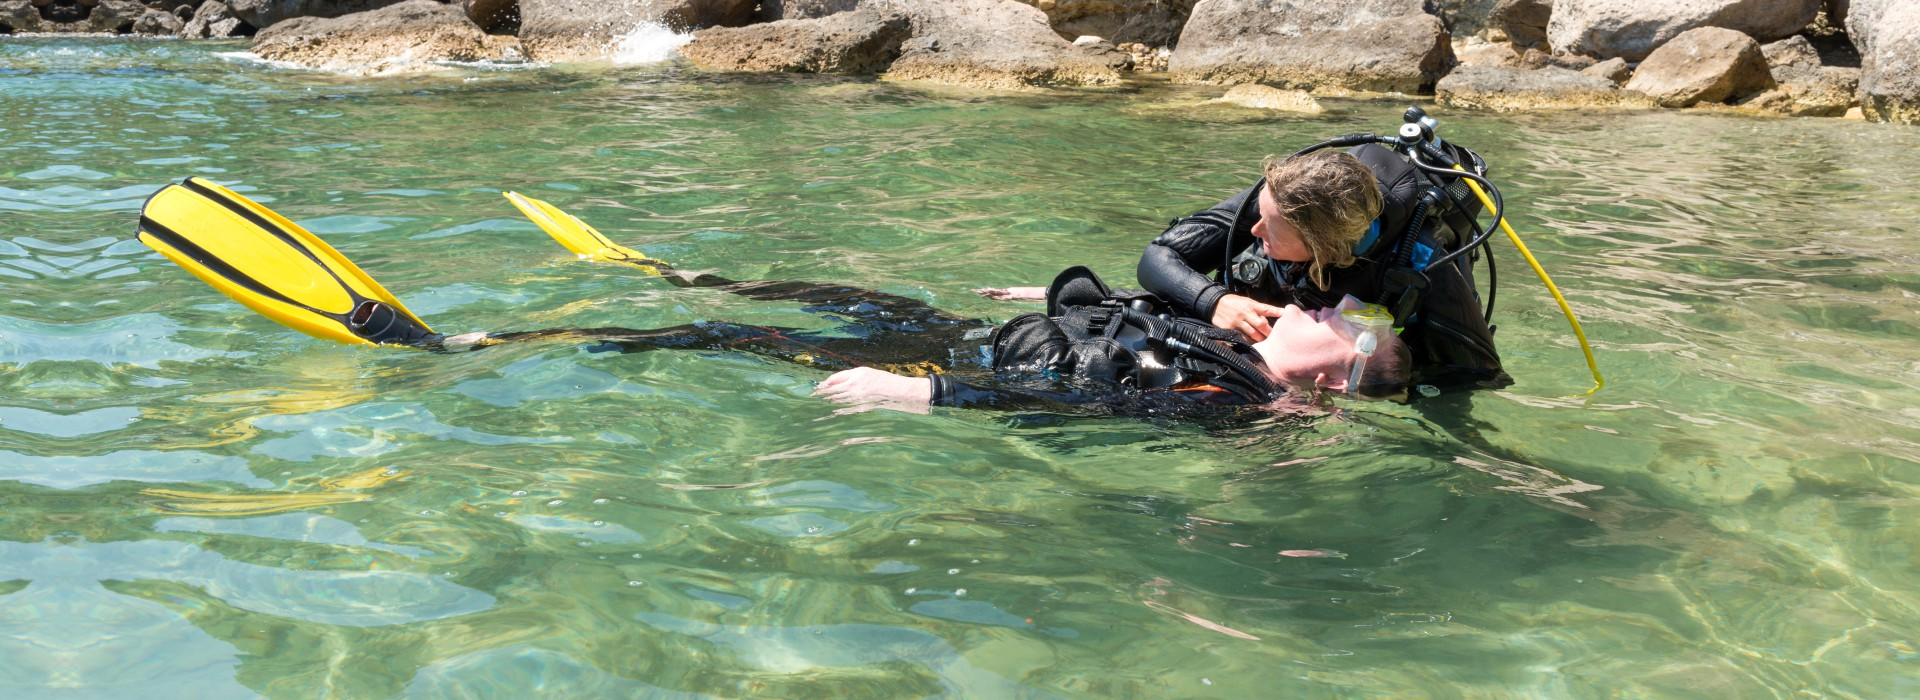 What You Need To Know About The PADI Rescue Diver Course